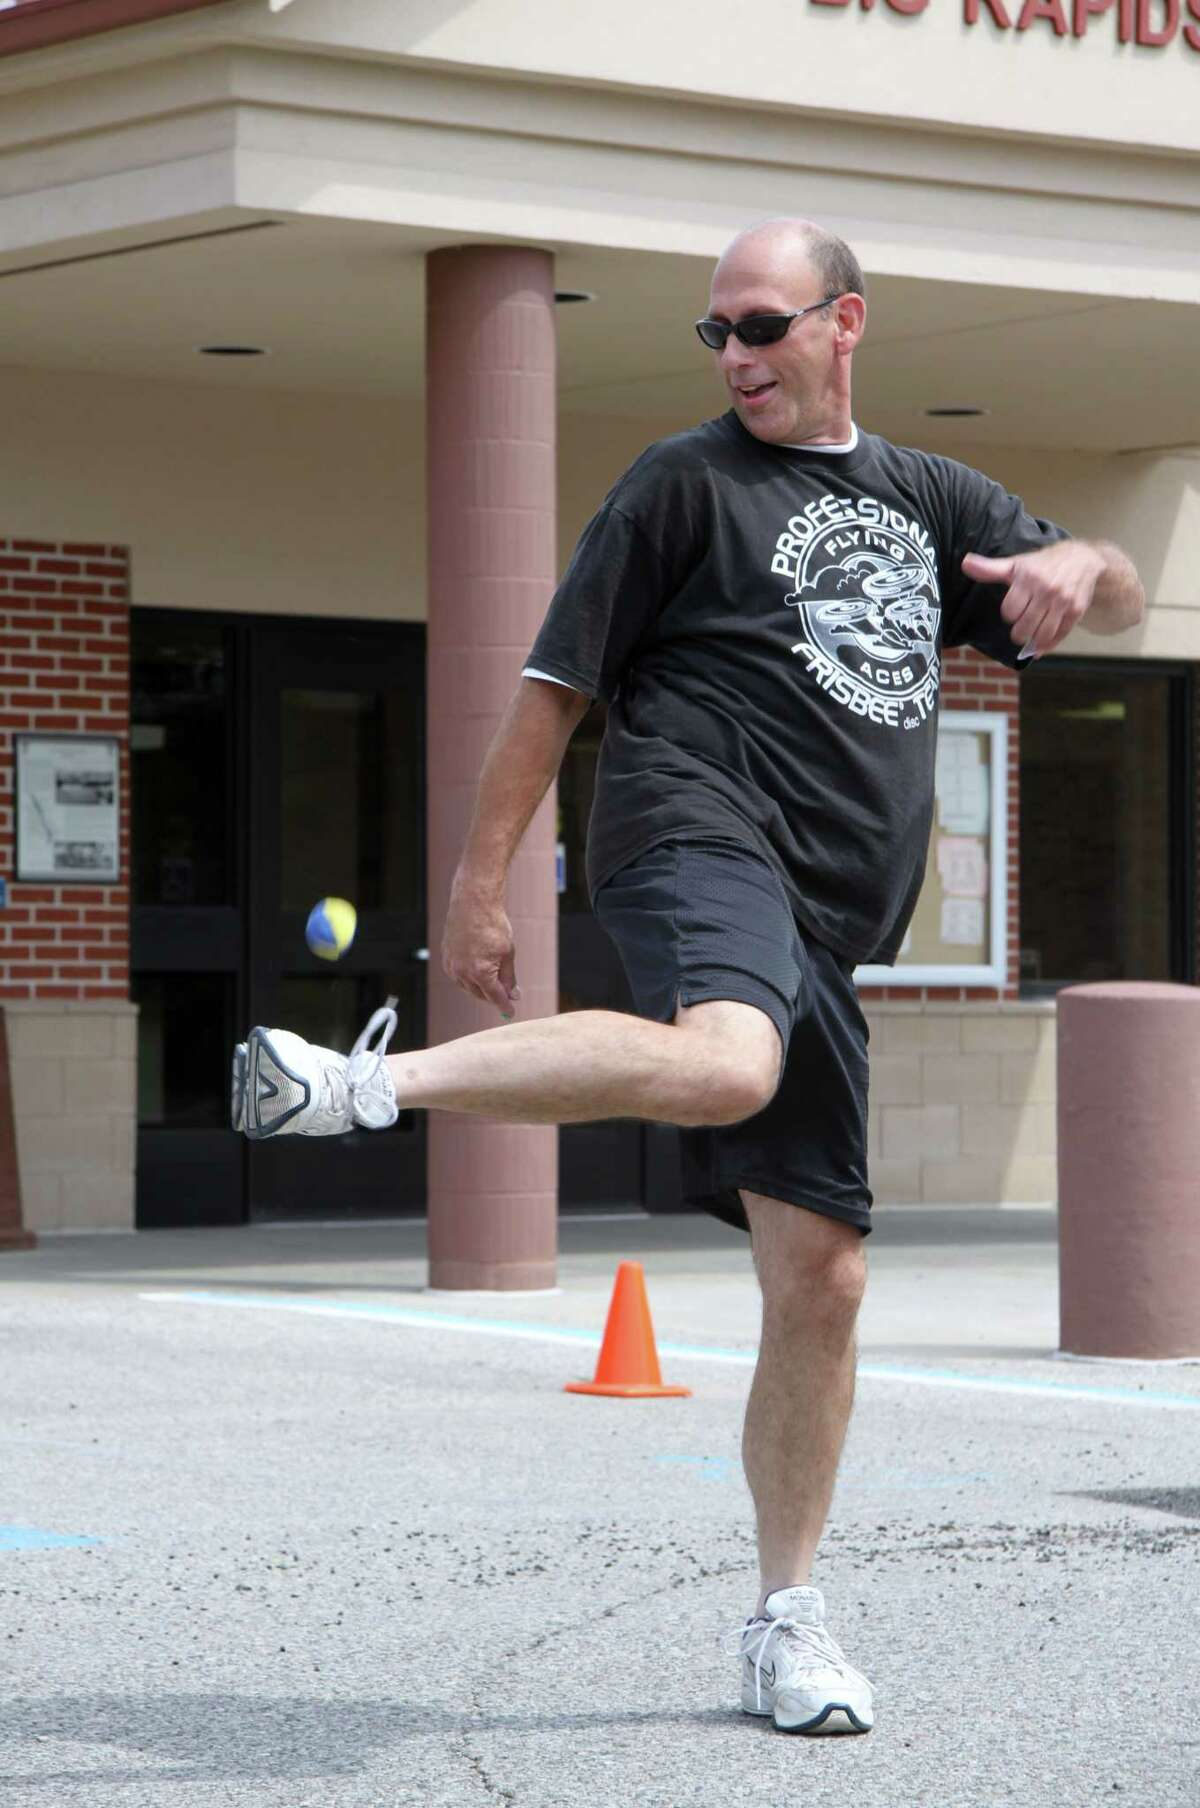 FLYING ACES: Jay Moldenhauer, 51, demonstrates different Frisbee throws. As the three-time world champion of hacky sack, he also showed off his hacky sack skills. (Pioneer photos/Lauren Fitch)